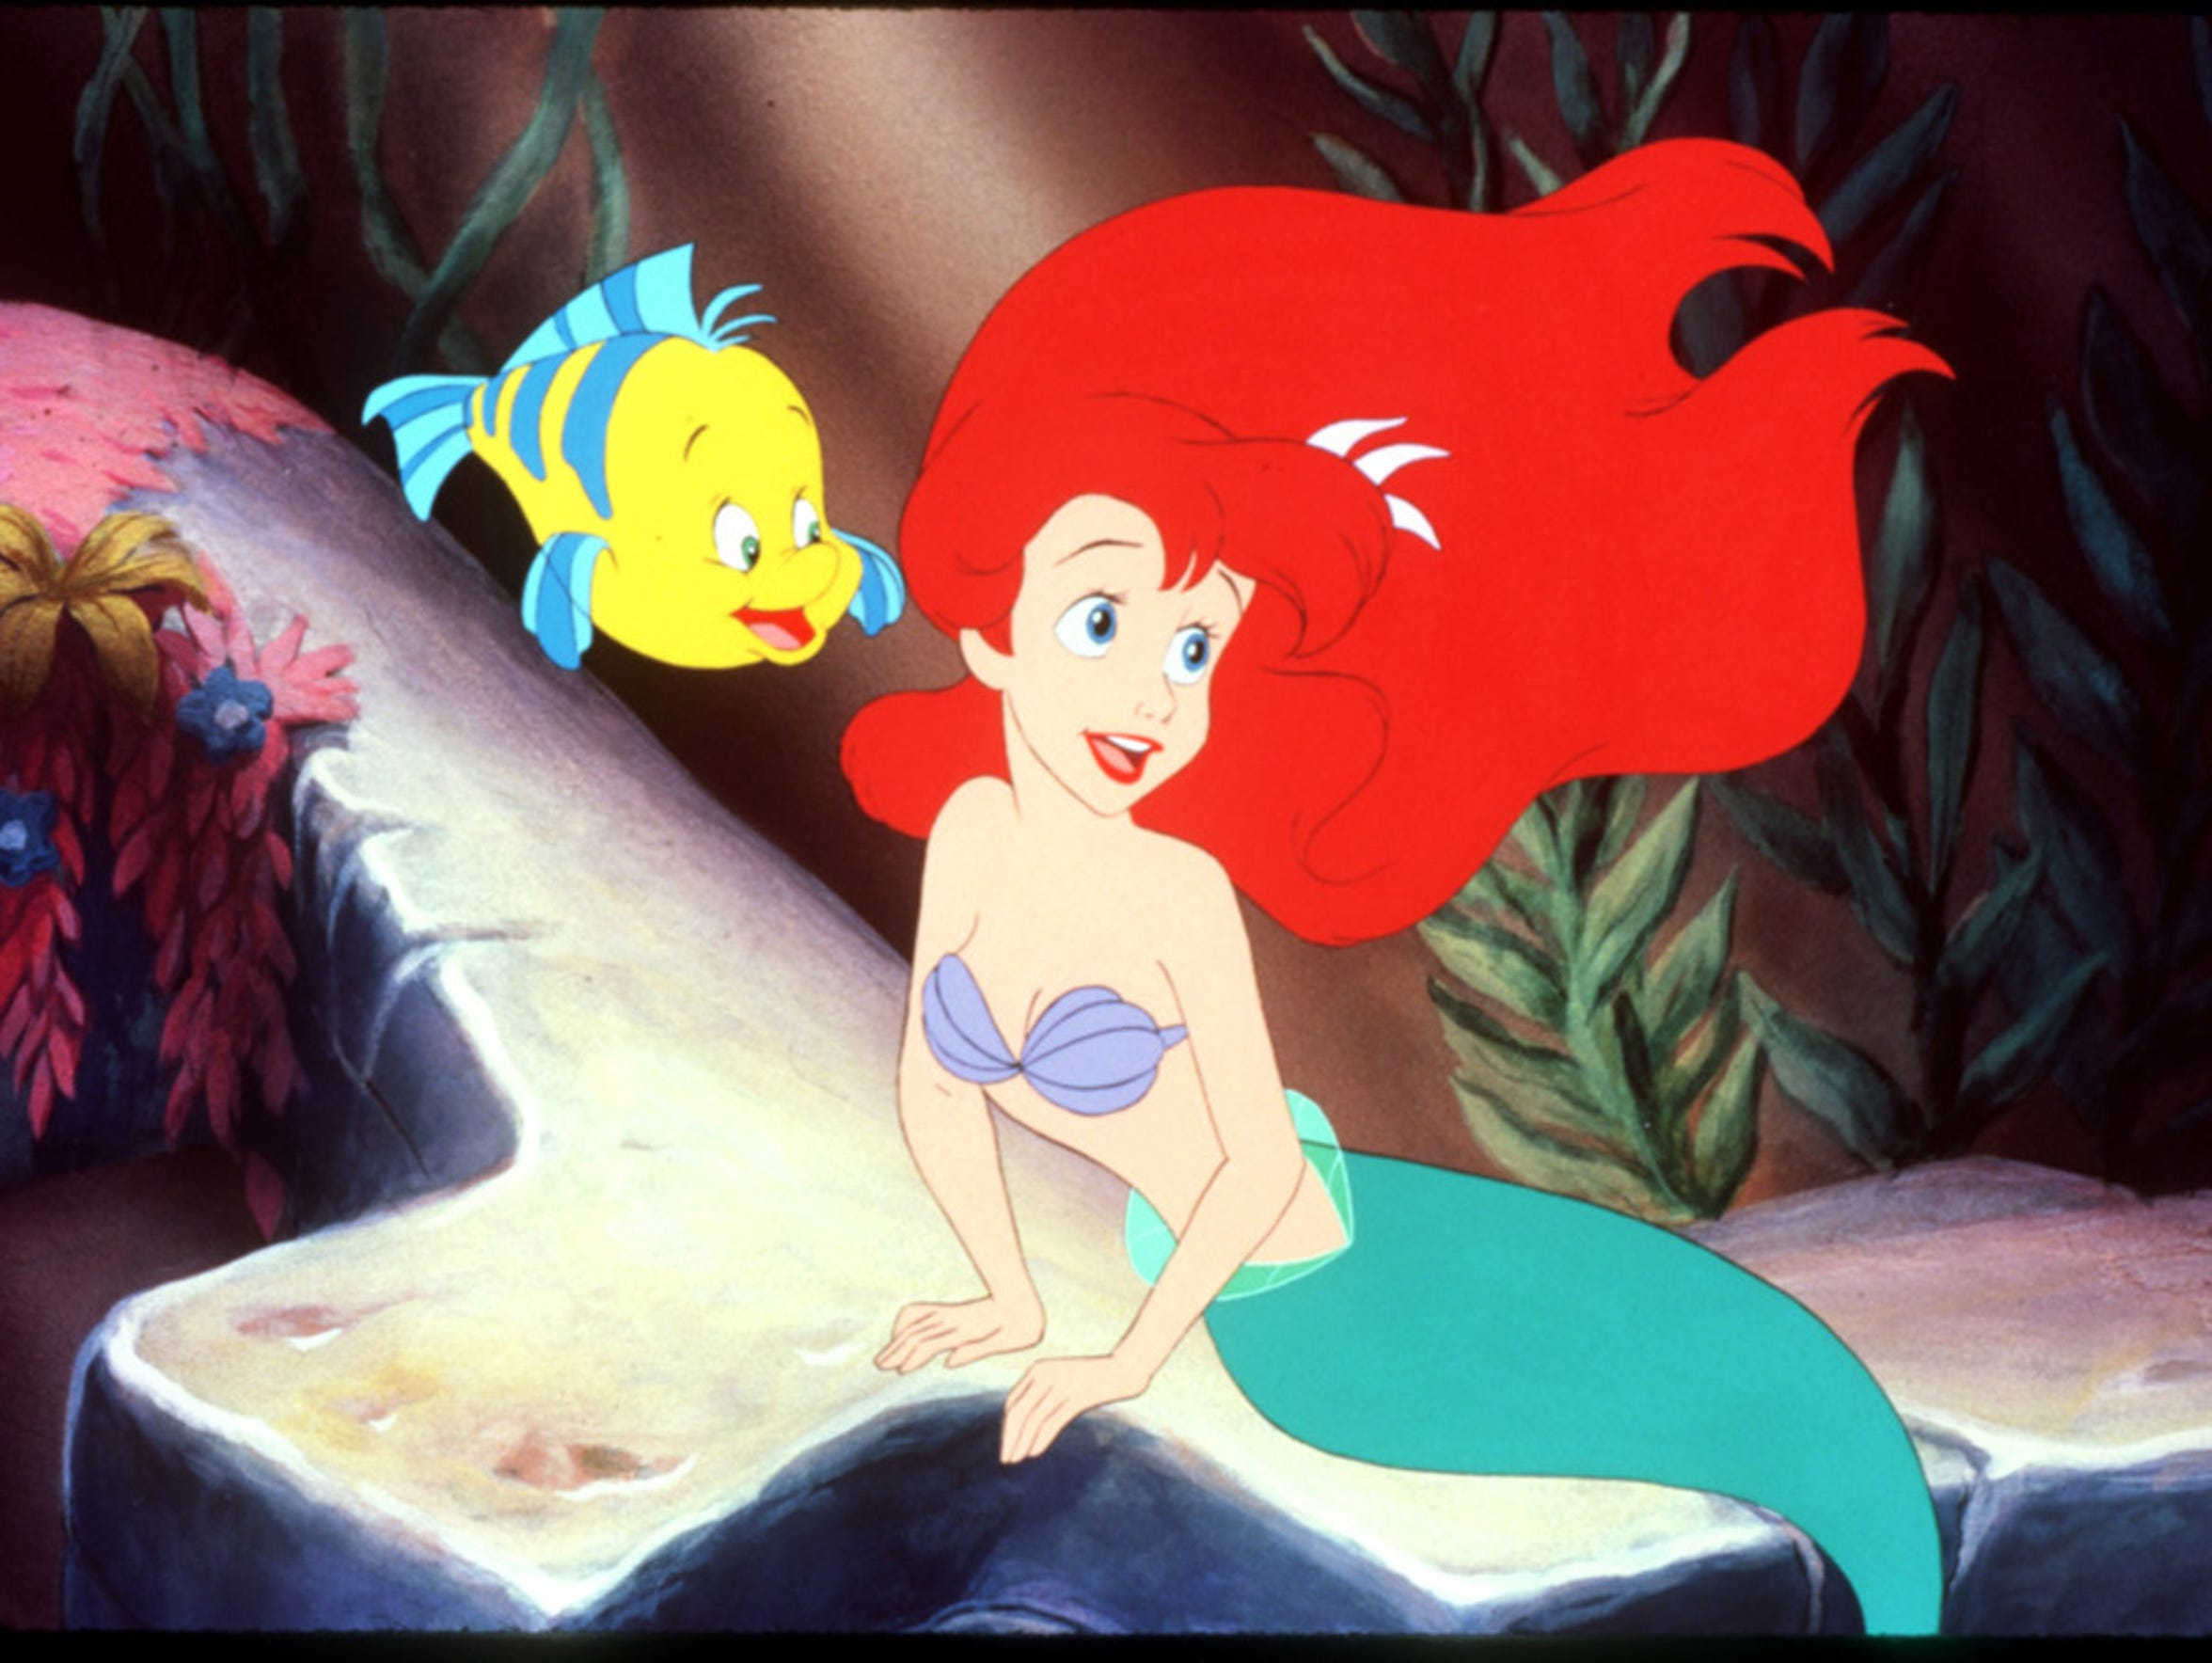 A scene from the 1989 Disney animated feature film